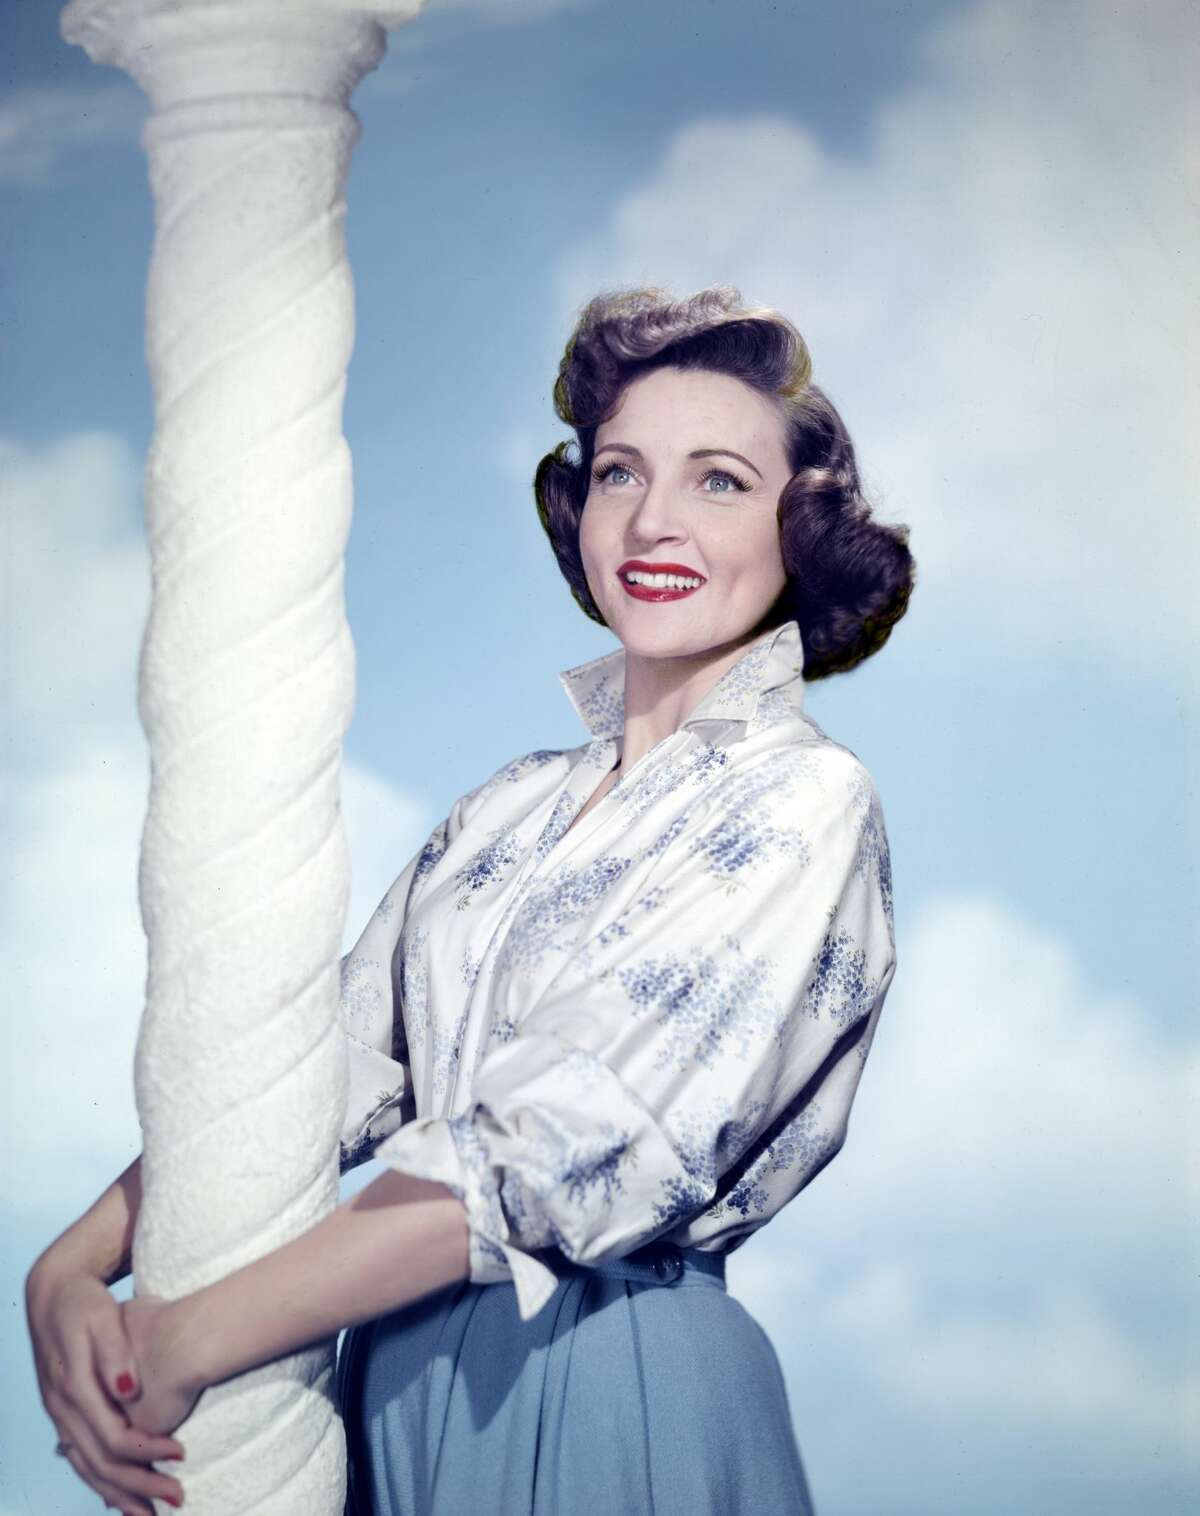 1957 (Photo by ABC Photo Archives/ABC via Getty Images) BETTY WHITE